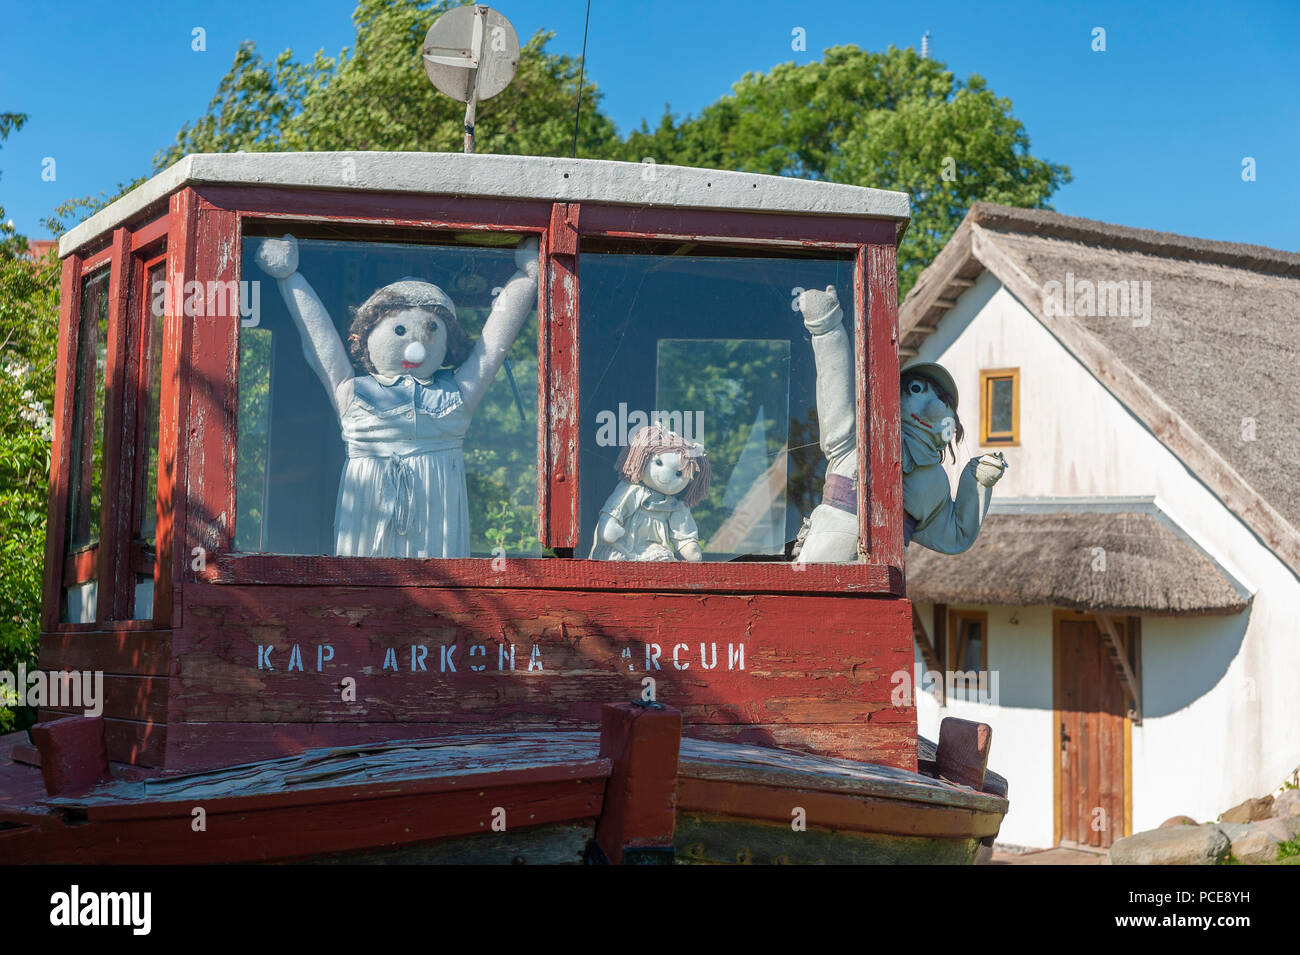 Wheelhouse of an old fishing boat in front of the inn Arcun at Cape Arkona, Putgarten, Rügen, Mecklenburg-Vorpommern, Germany, Europe - Stock Image